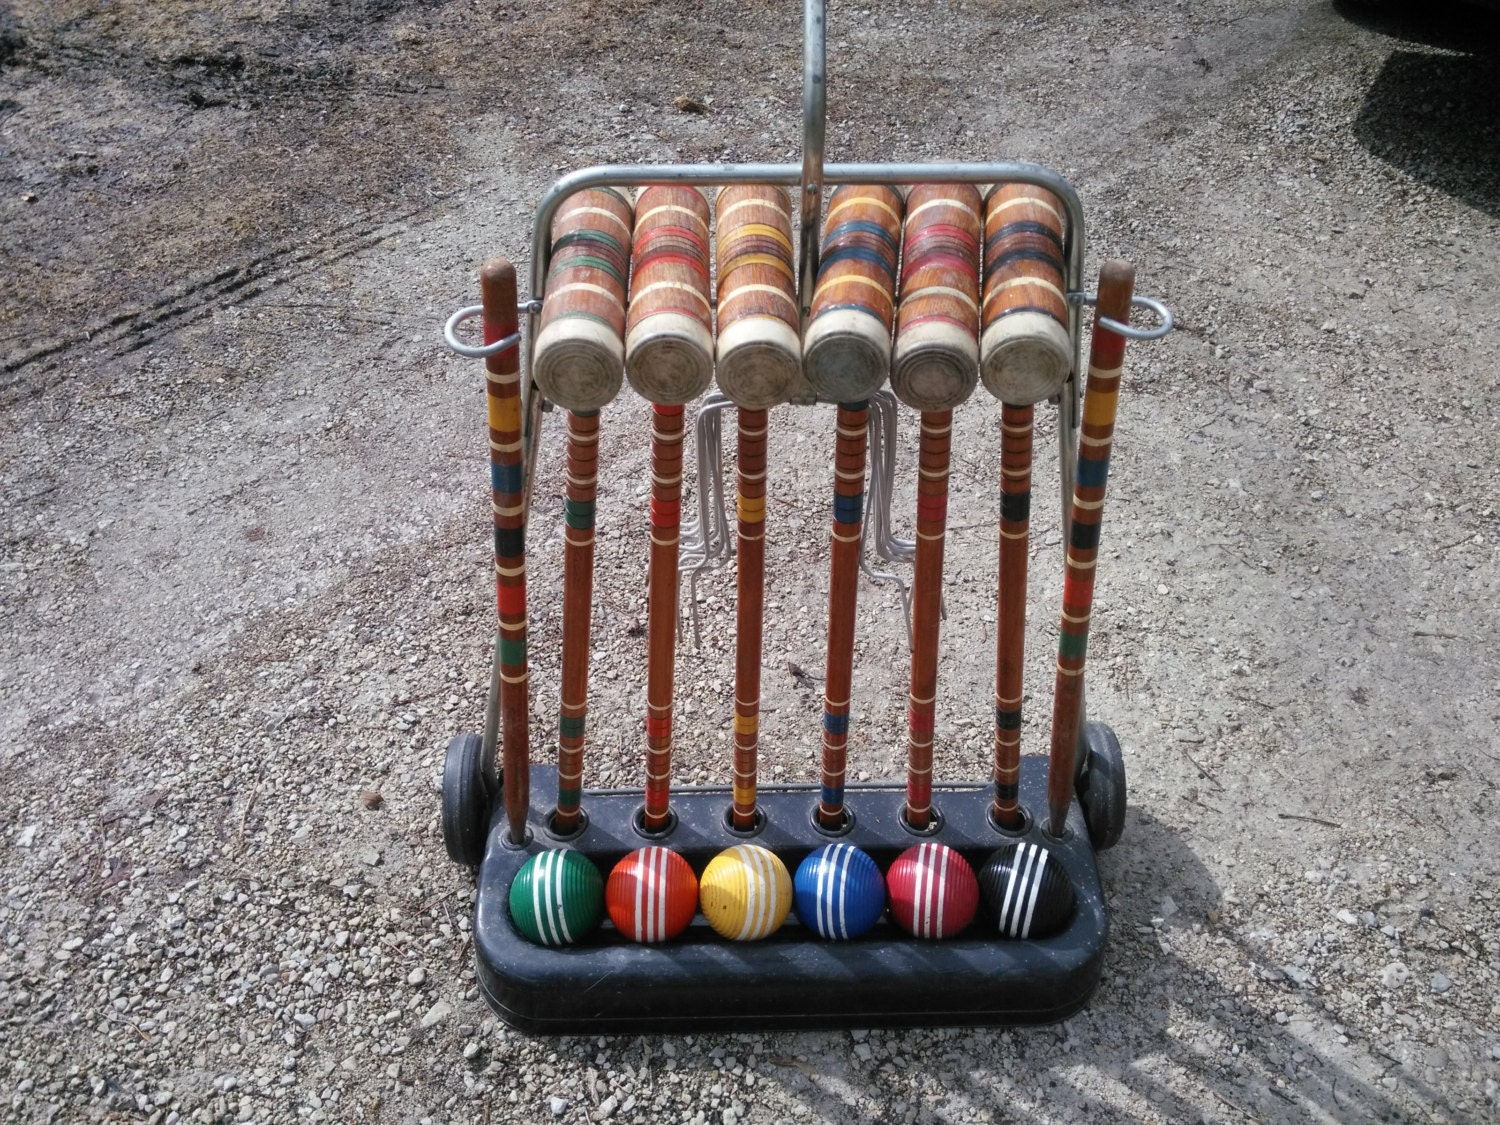 Vintage Six Player Croquet Set With Wheeled Cart By Judym2